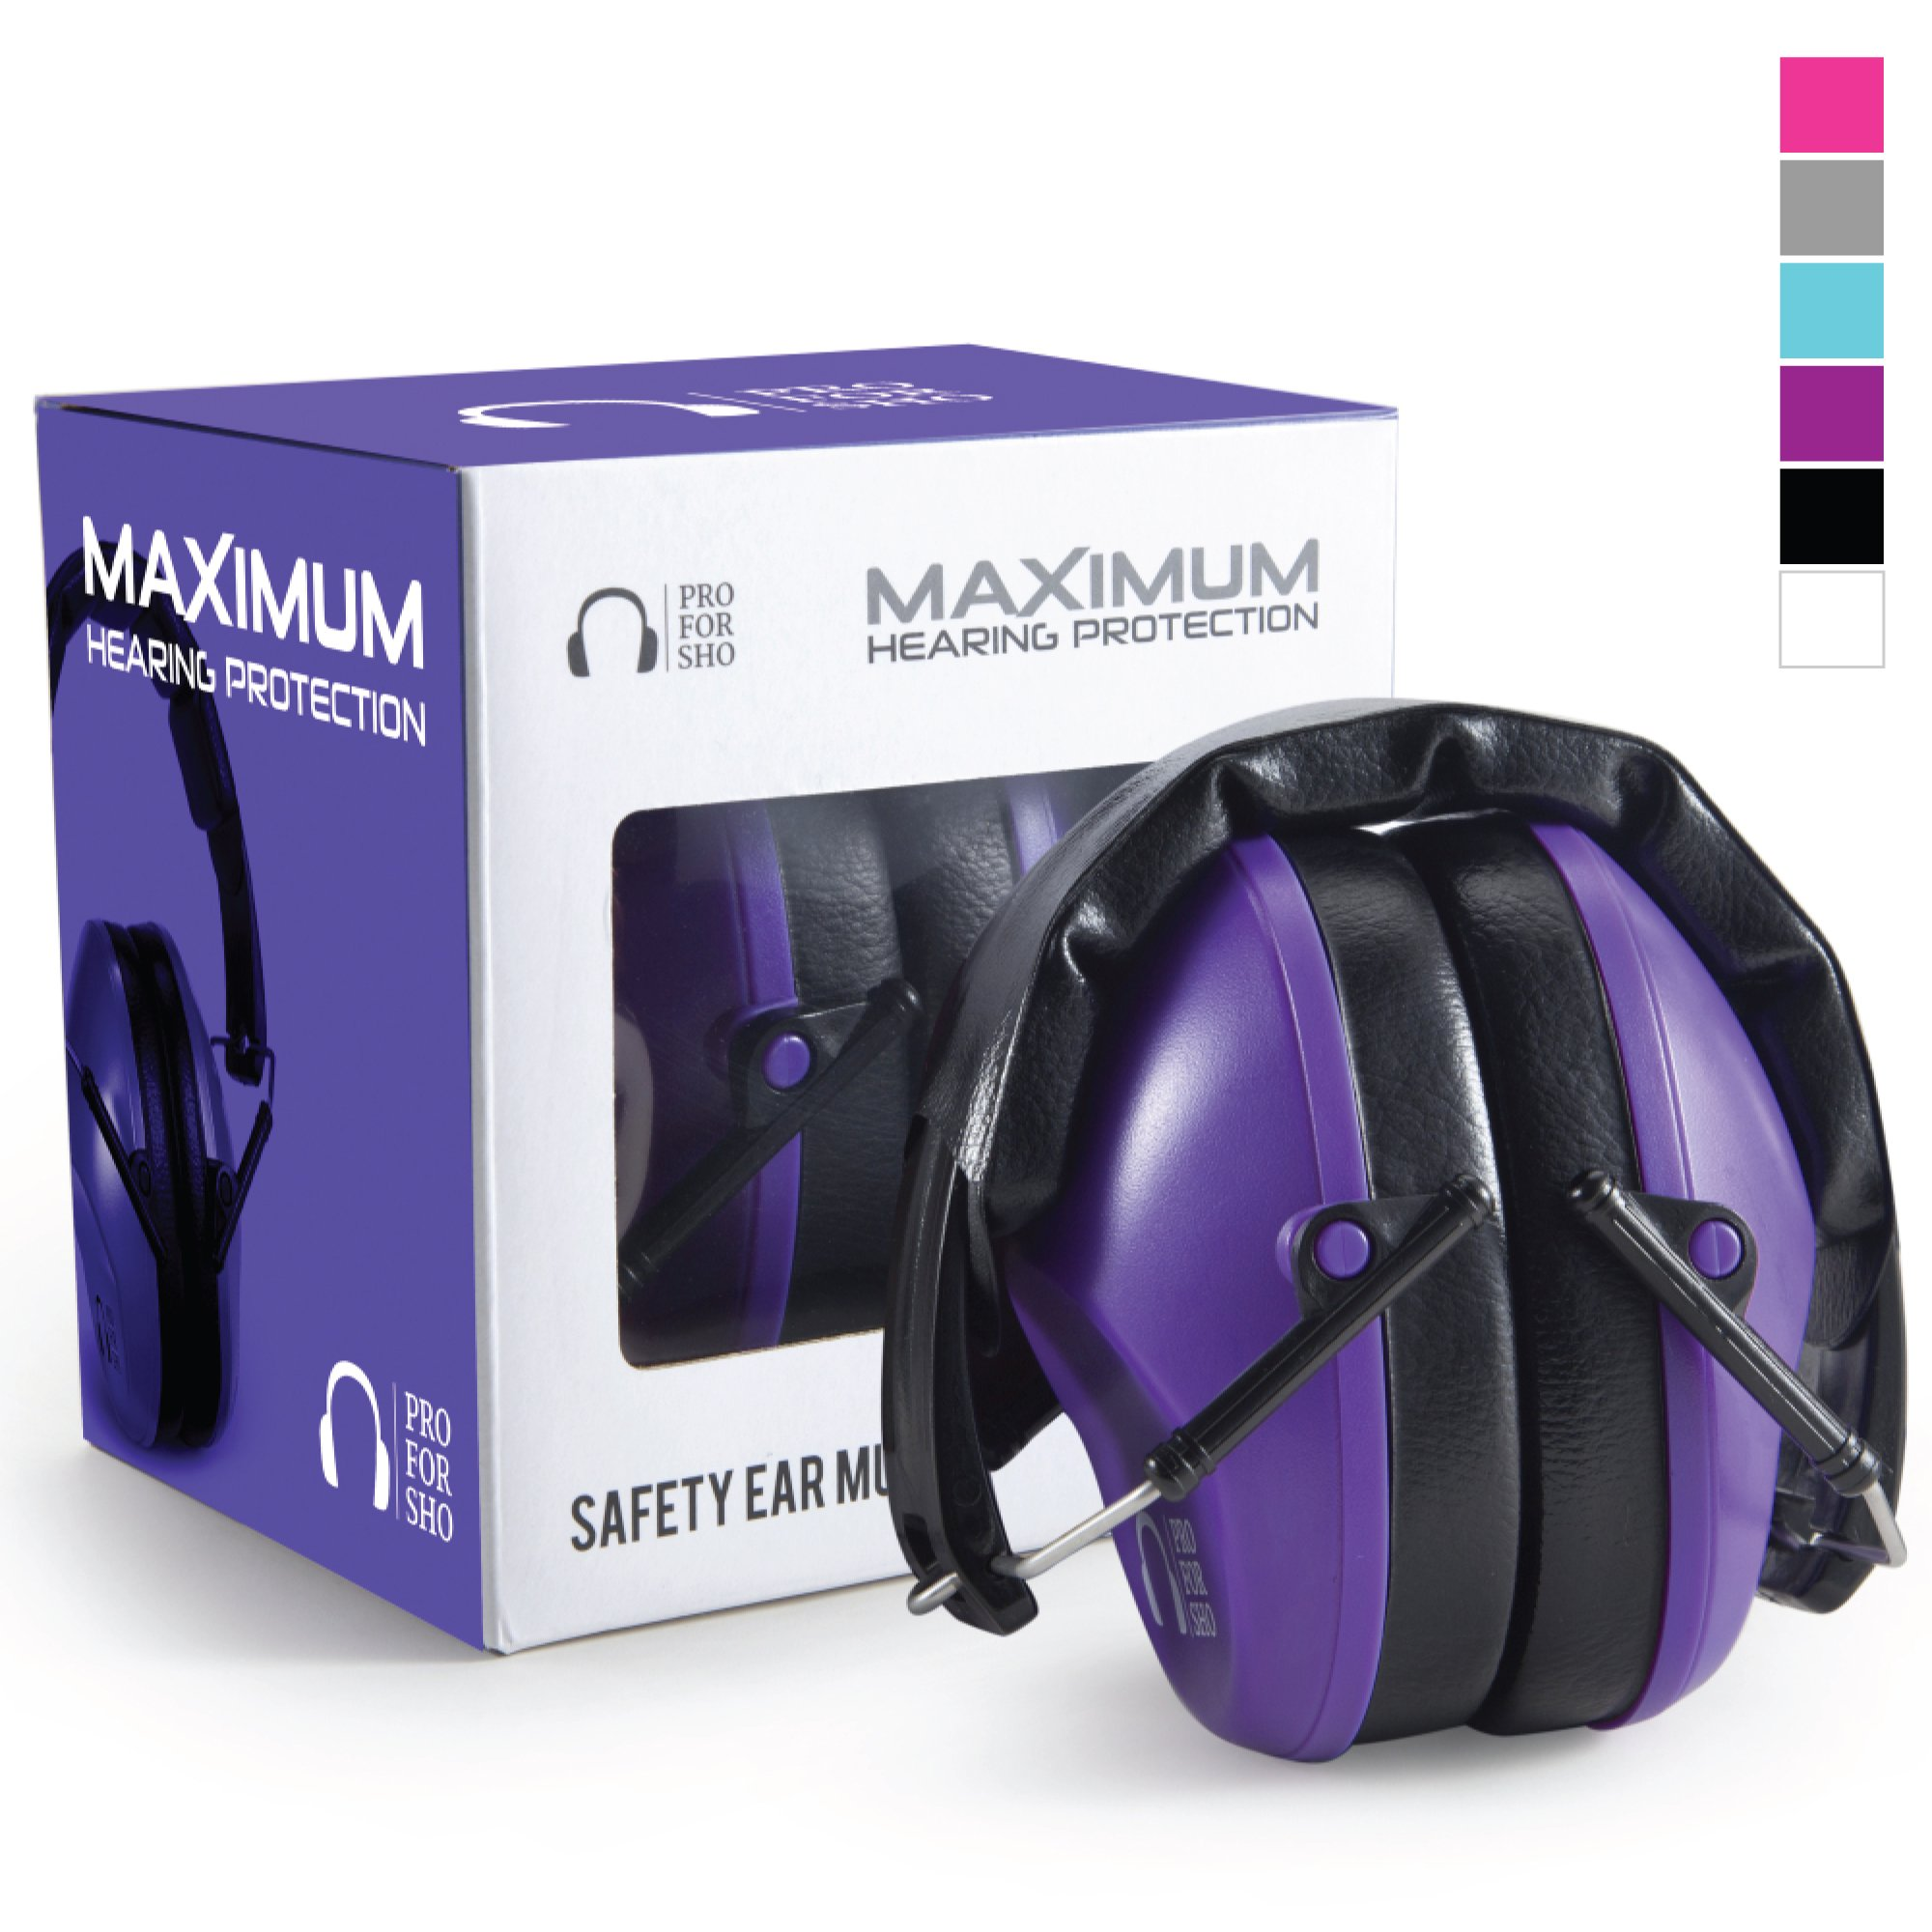 Pro For Sho 34dB Shooting Ear Protection - Special Designed Ear Muffs Lighter Weight & Maximum Hearing Protection - Standard Size, Purple by Pro For Sho